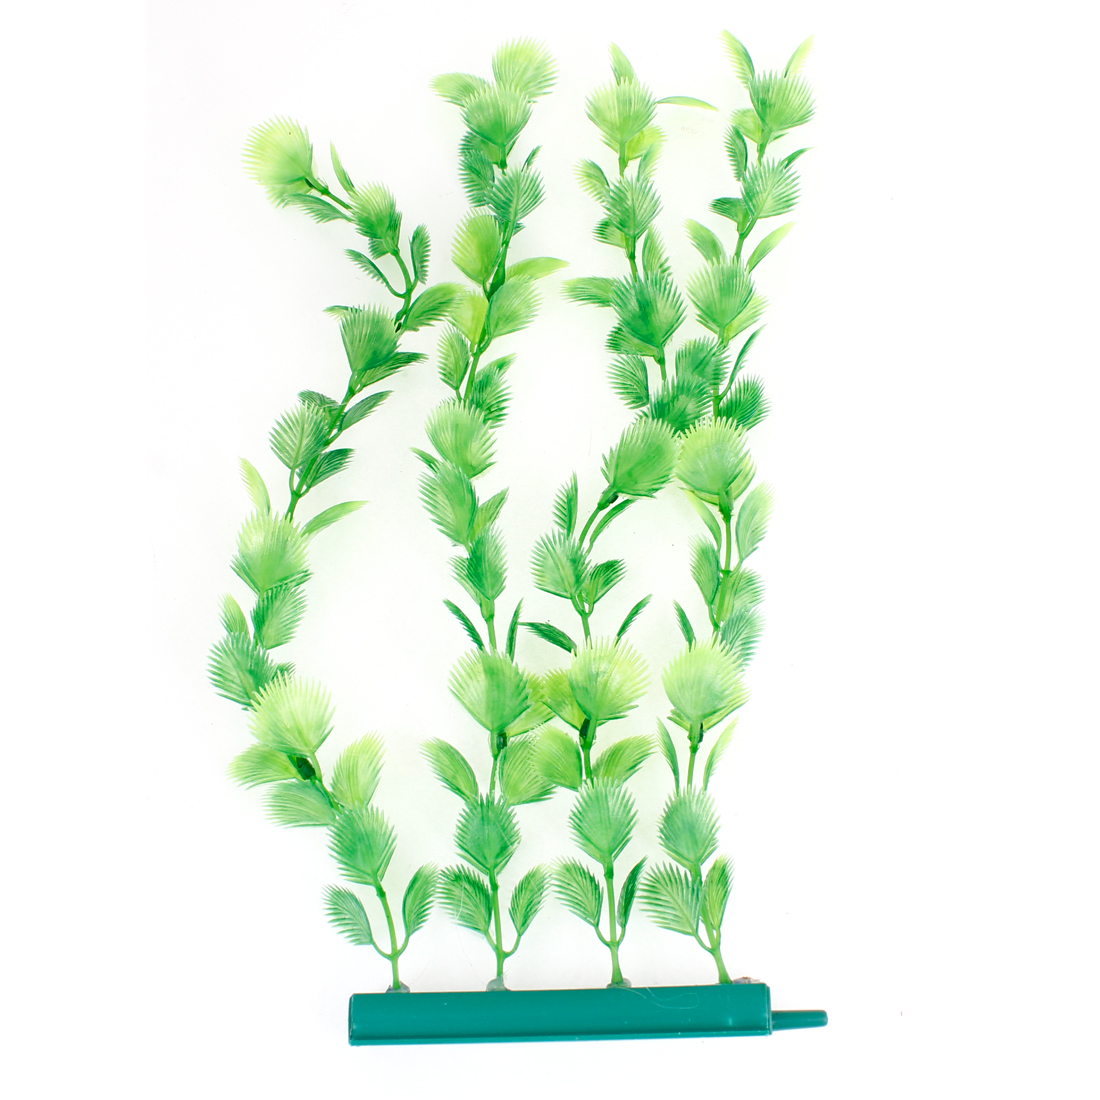 "Aquarium Emulational Decoration Green Plastic Underwater Plant 11.8"" Height"